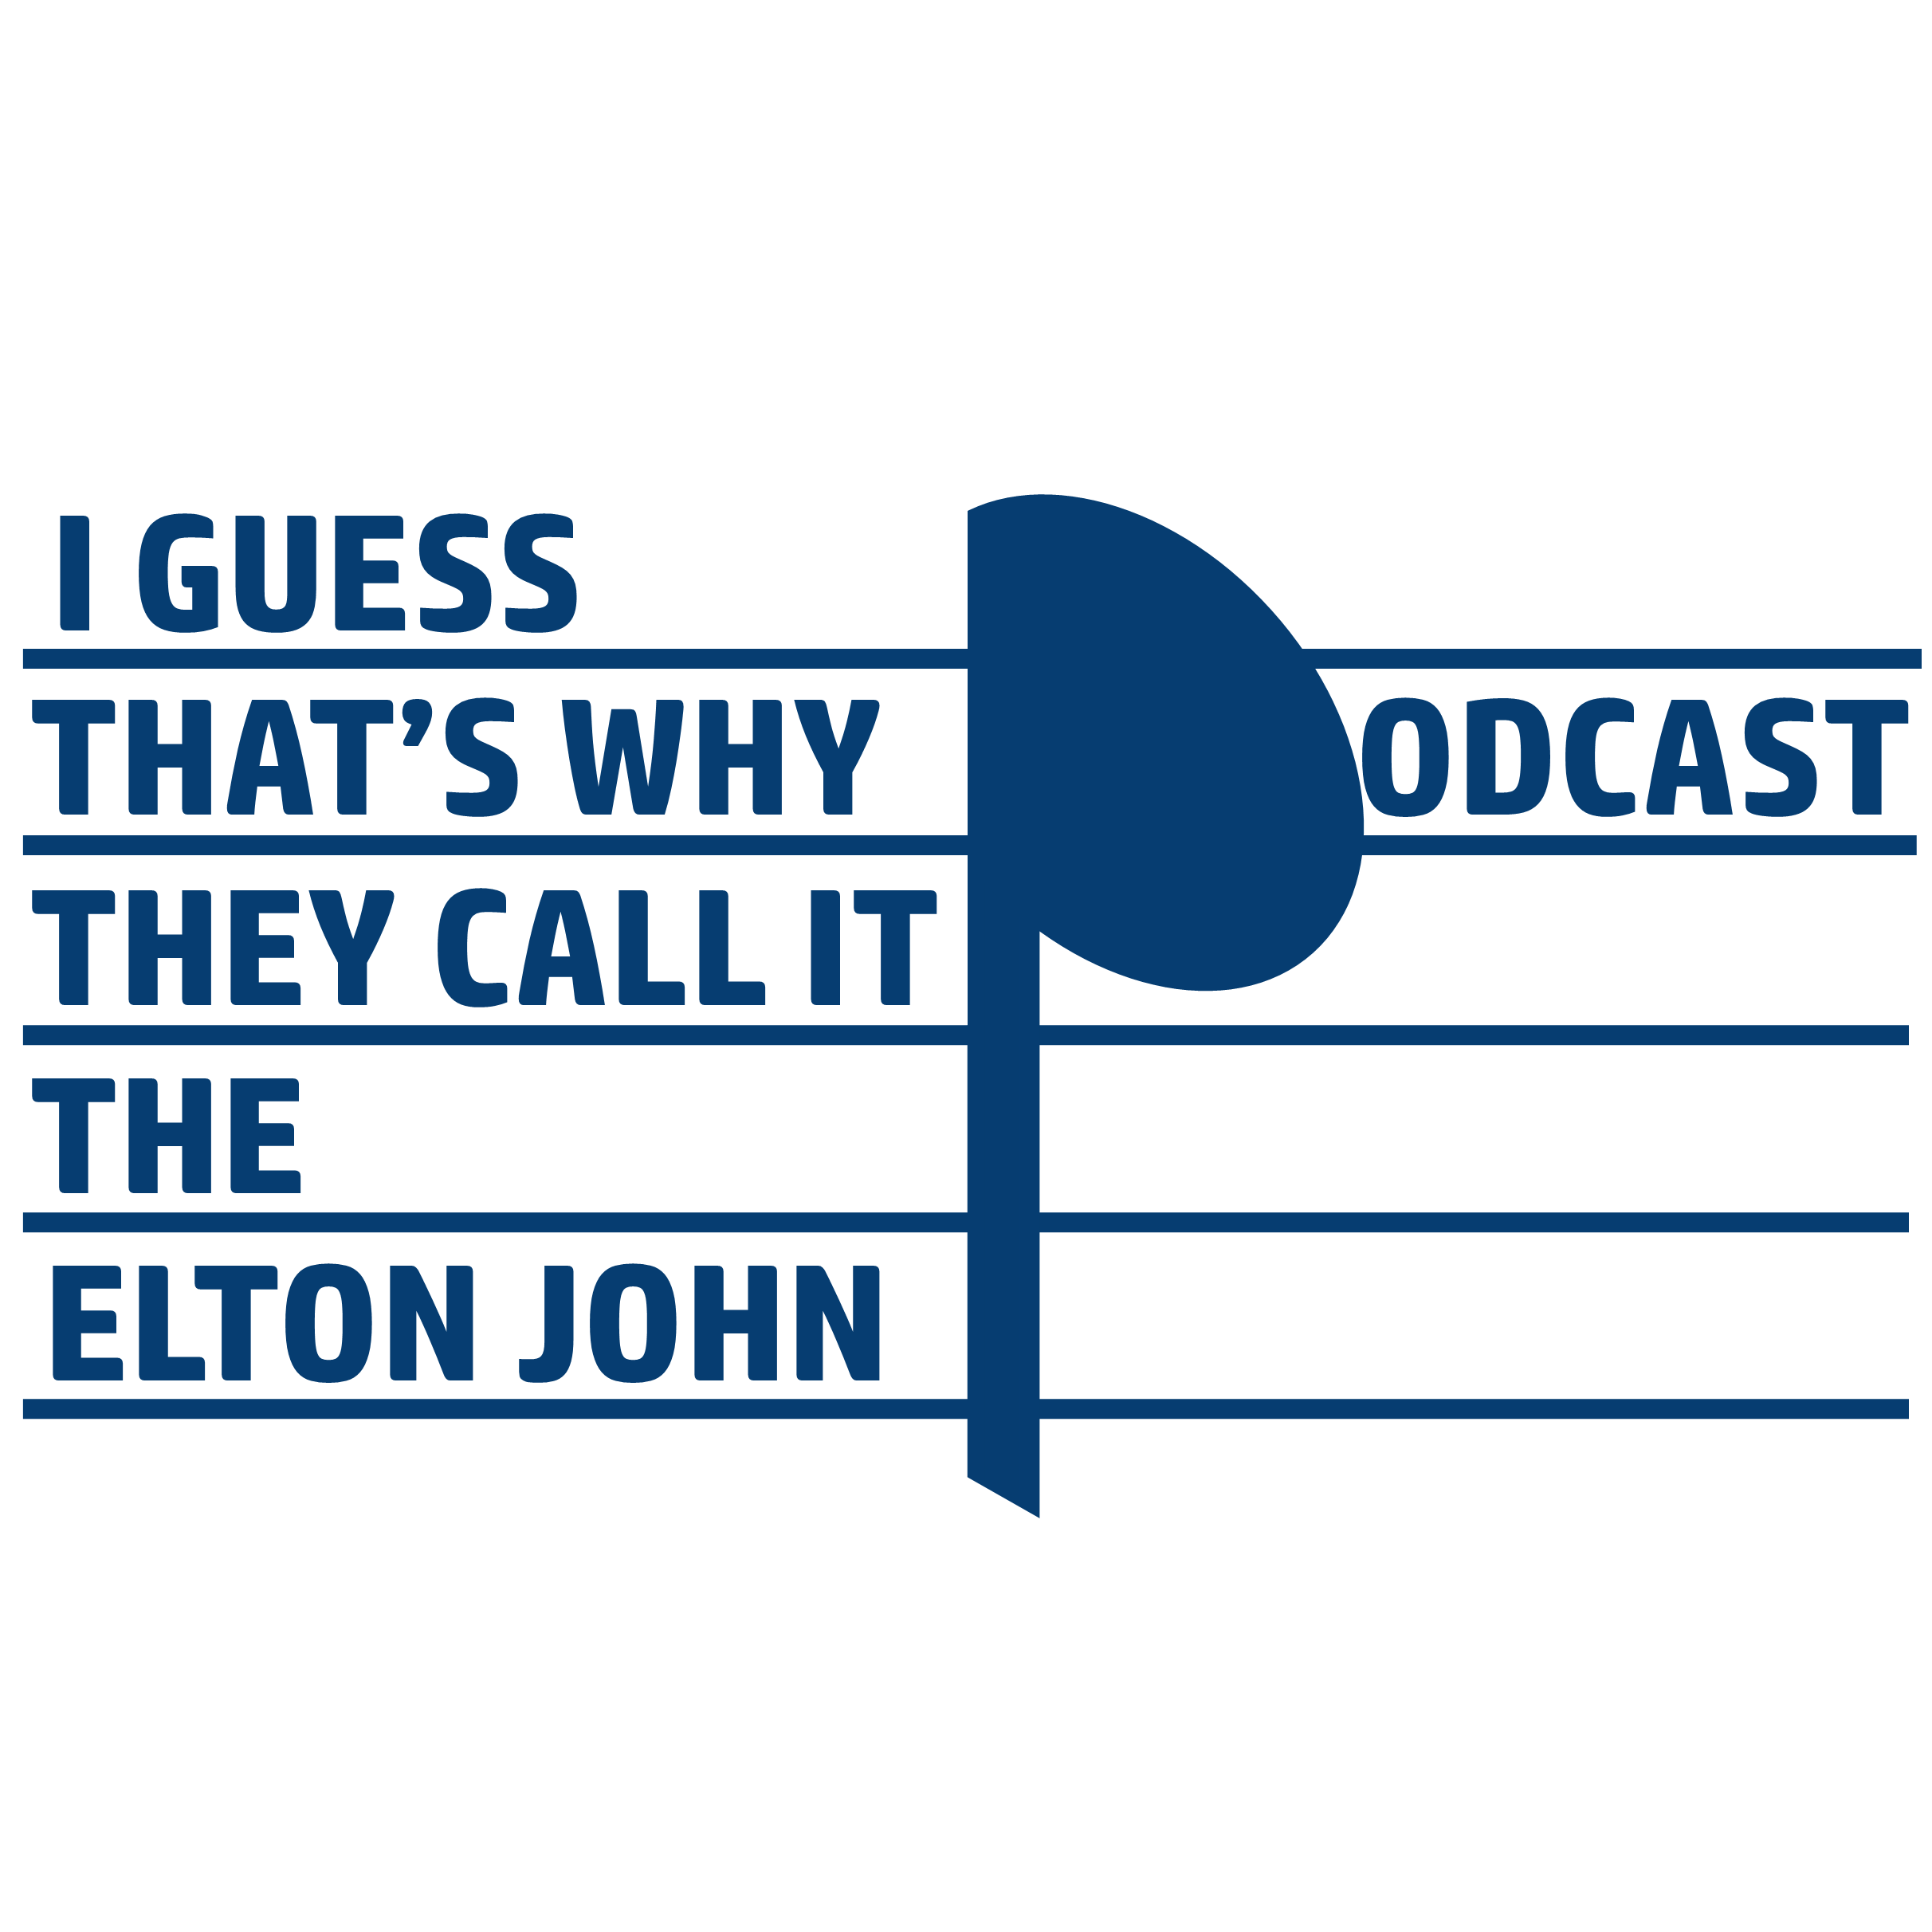 I Guess That's Why They Call It The Elton John Podcast